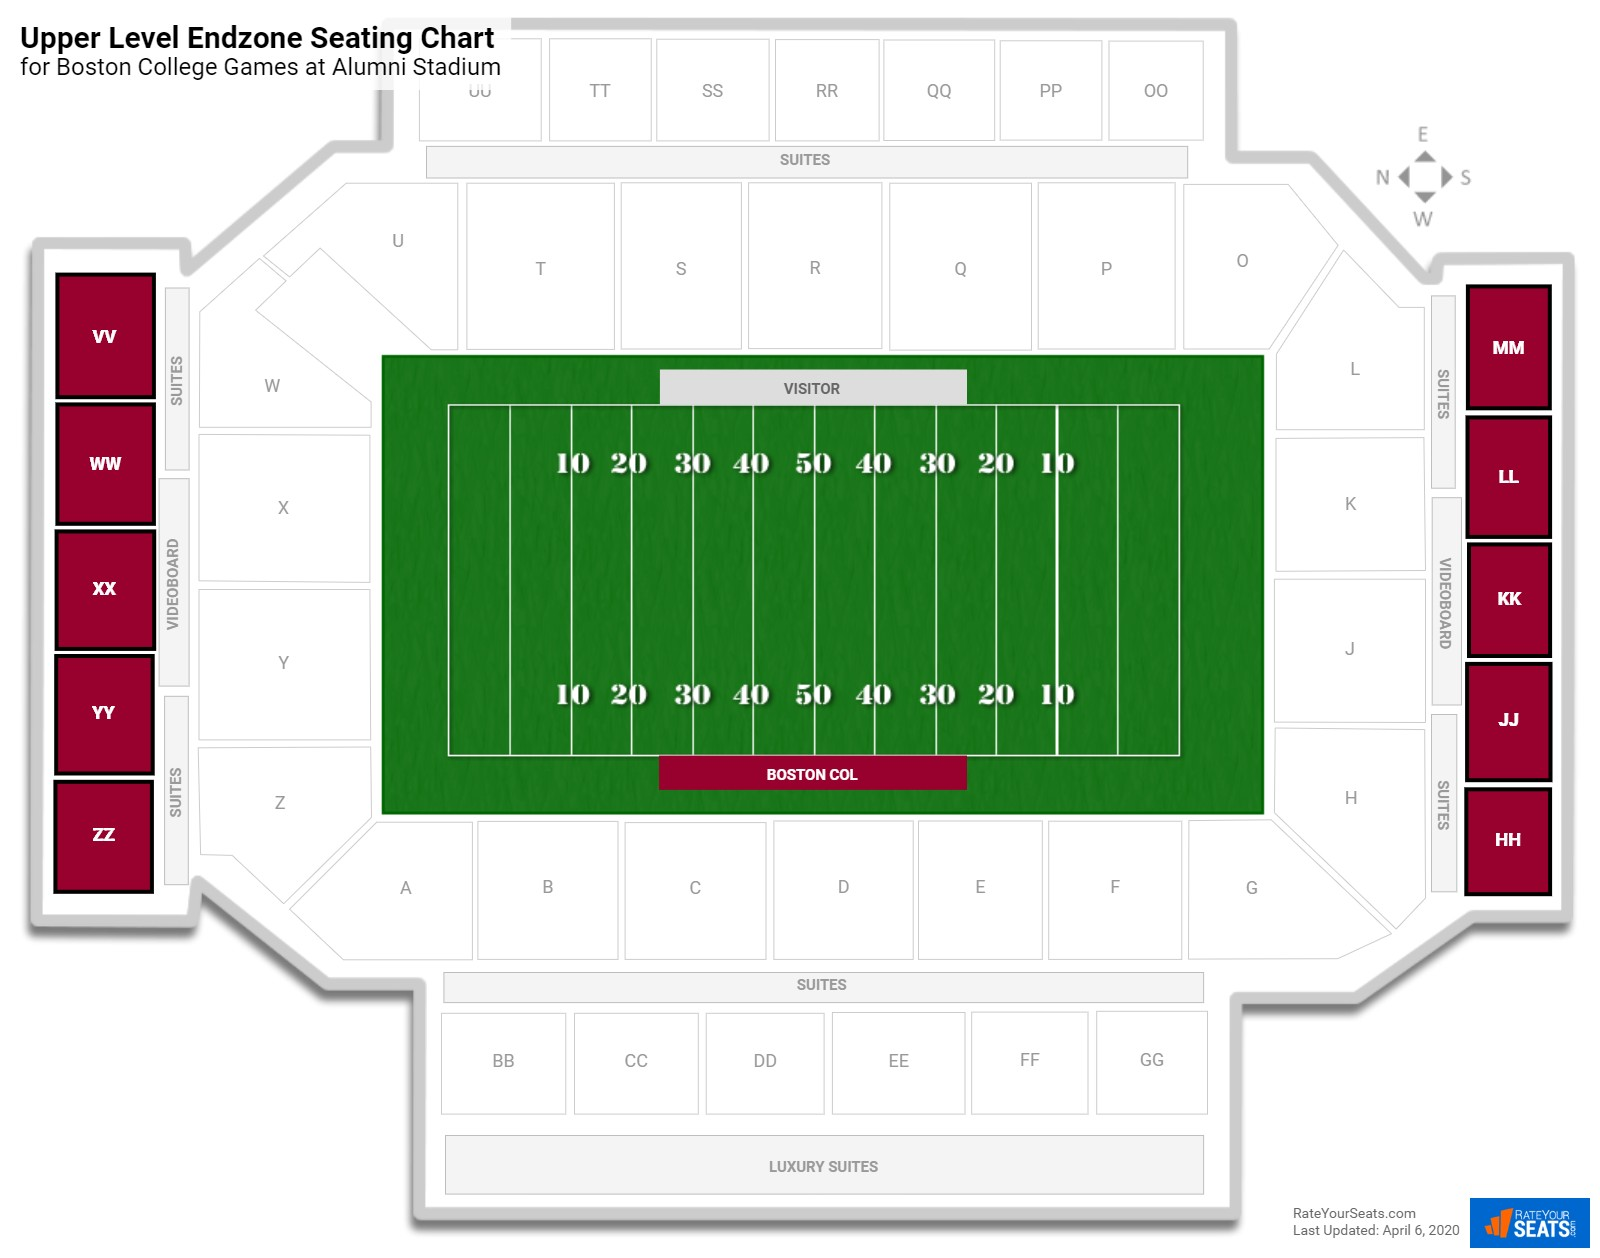 Alumni Stadium Upper Level Endzone seating chart